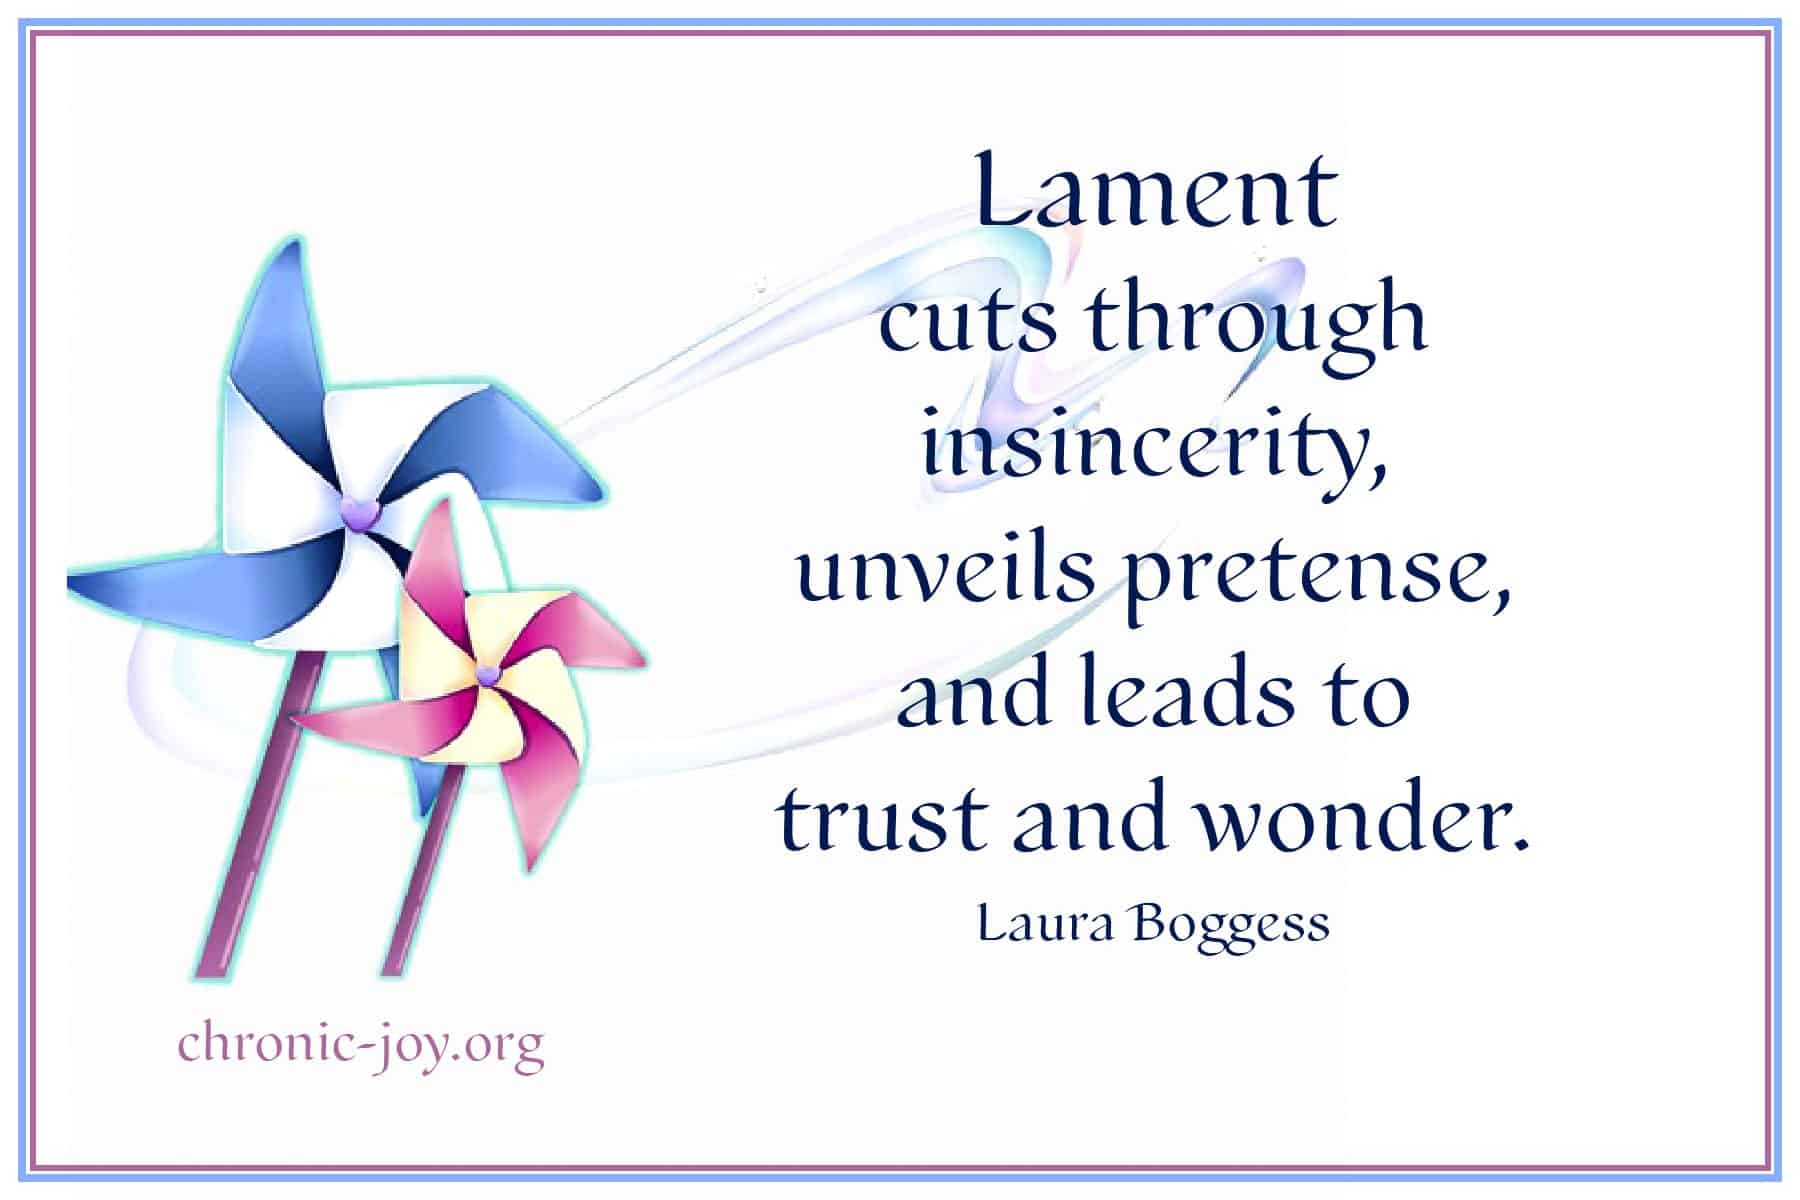 Lament cuts through insincerity, unveils pretense and leads to trust and wonder.